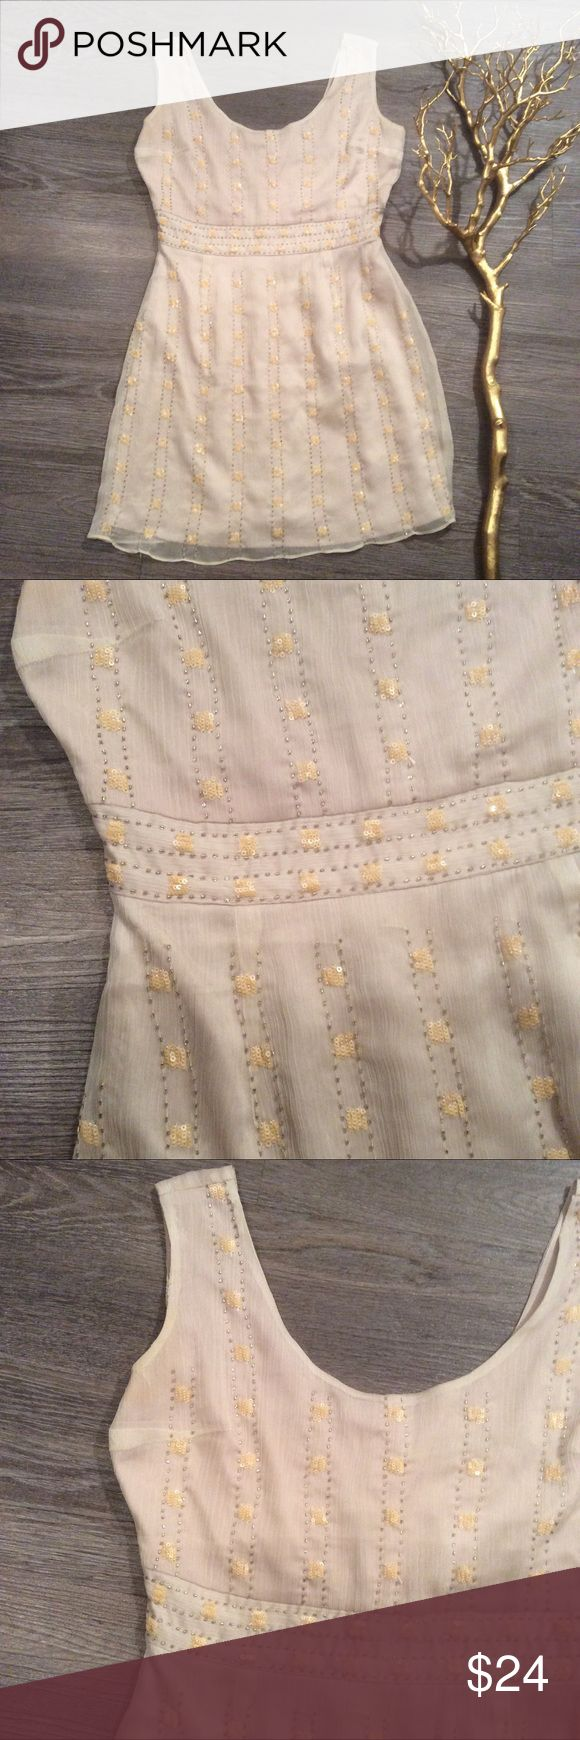 "🌻Beautiful sequin Dot stripe mini Dress dainty S Pretty whimsical little number in a beige tone and pastel yellow and white sequined dots in vertical, stripes. In great condition! This is short approx. 32"" so marking this as a petite. Modcloth Dresses Mini"